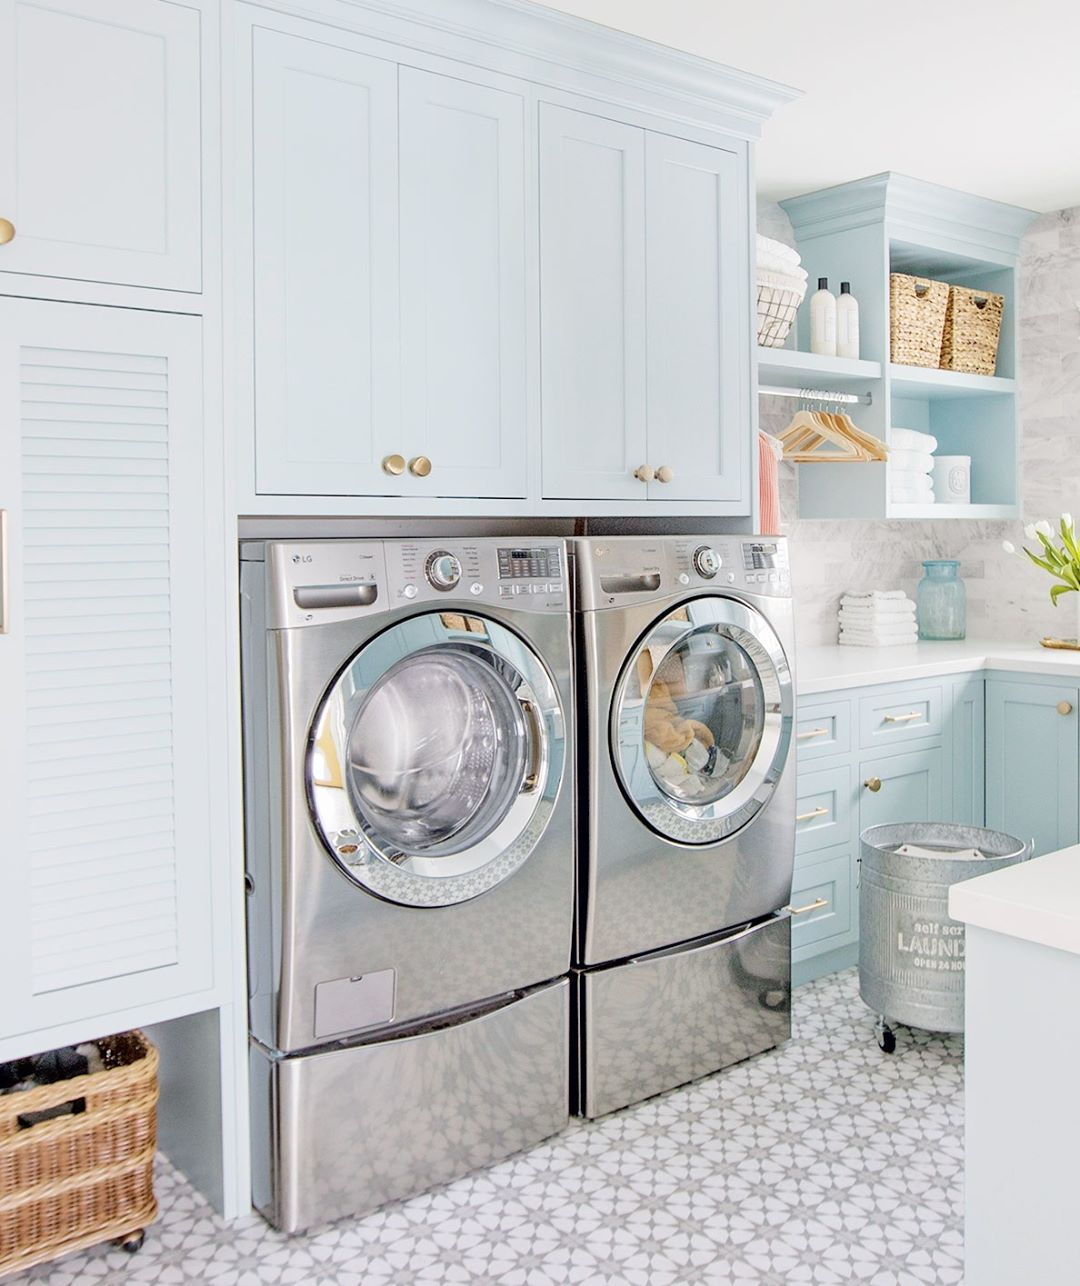 Choosing A Front Loading Washer And Dryer Meant More Cabinets